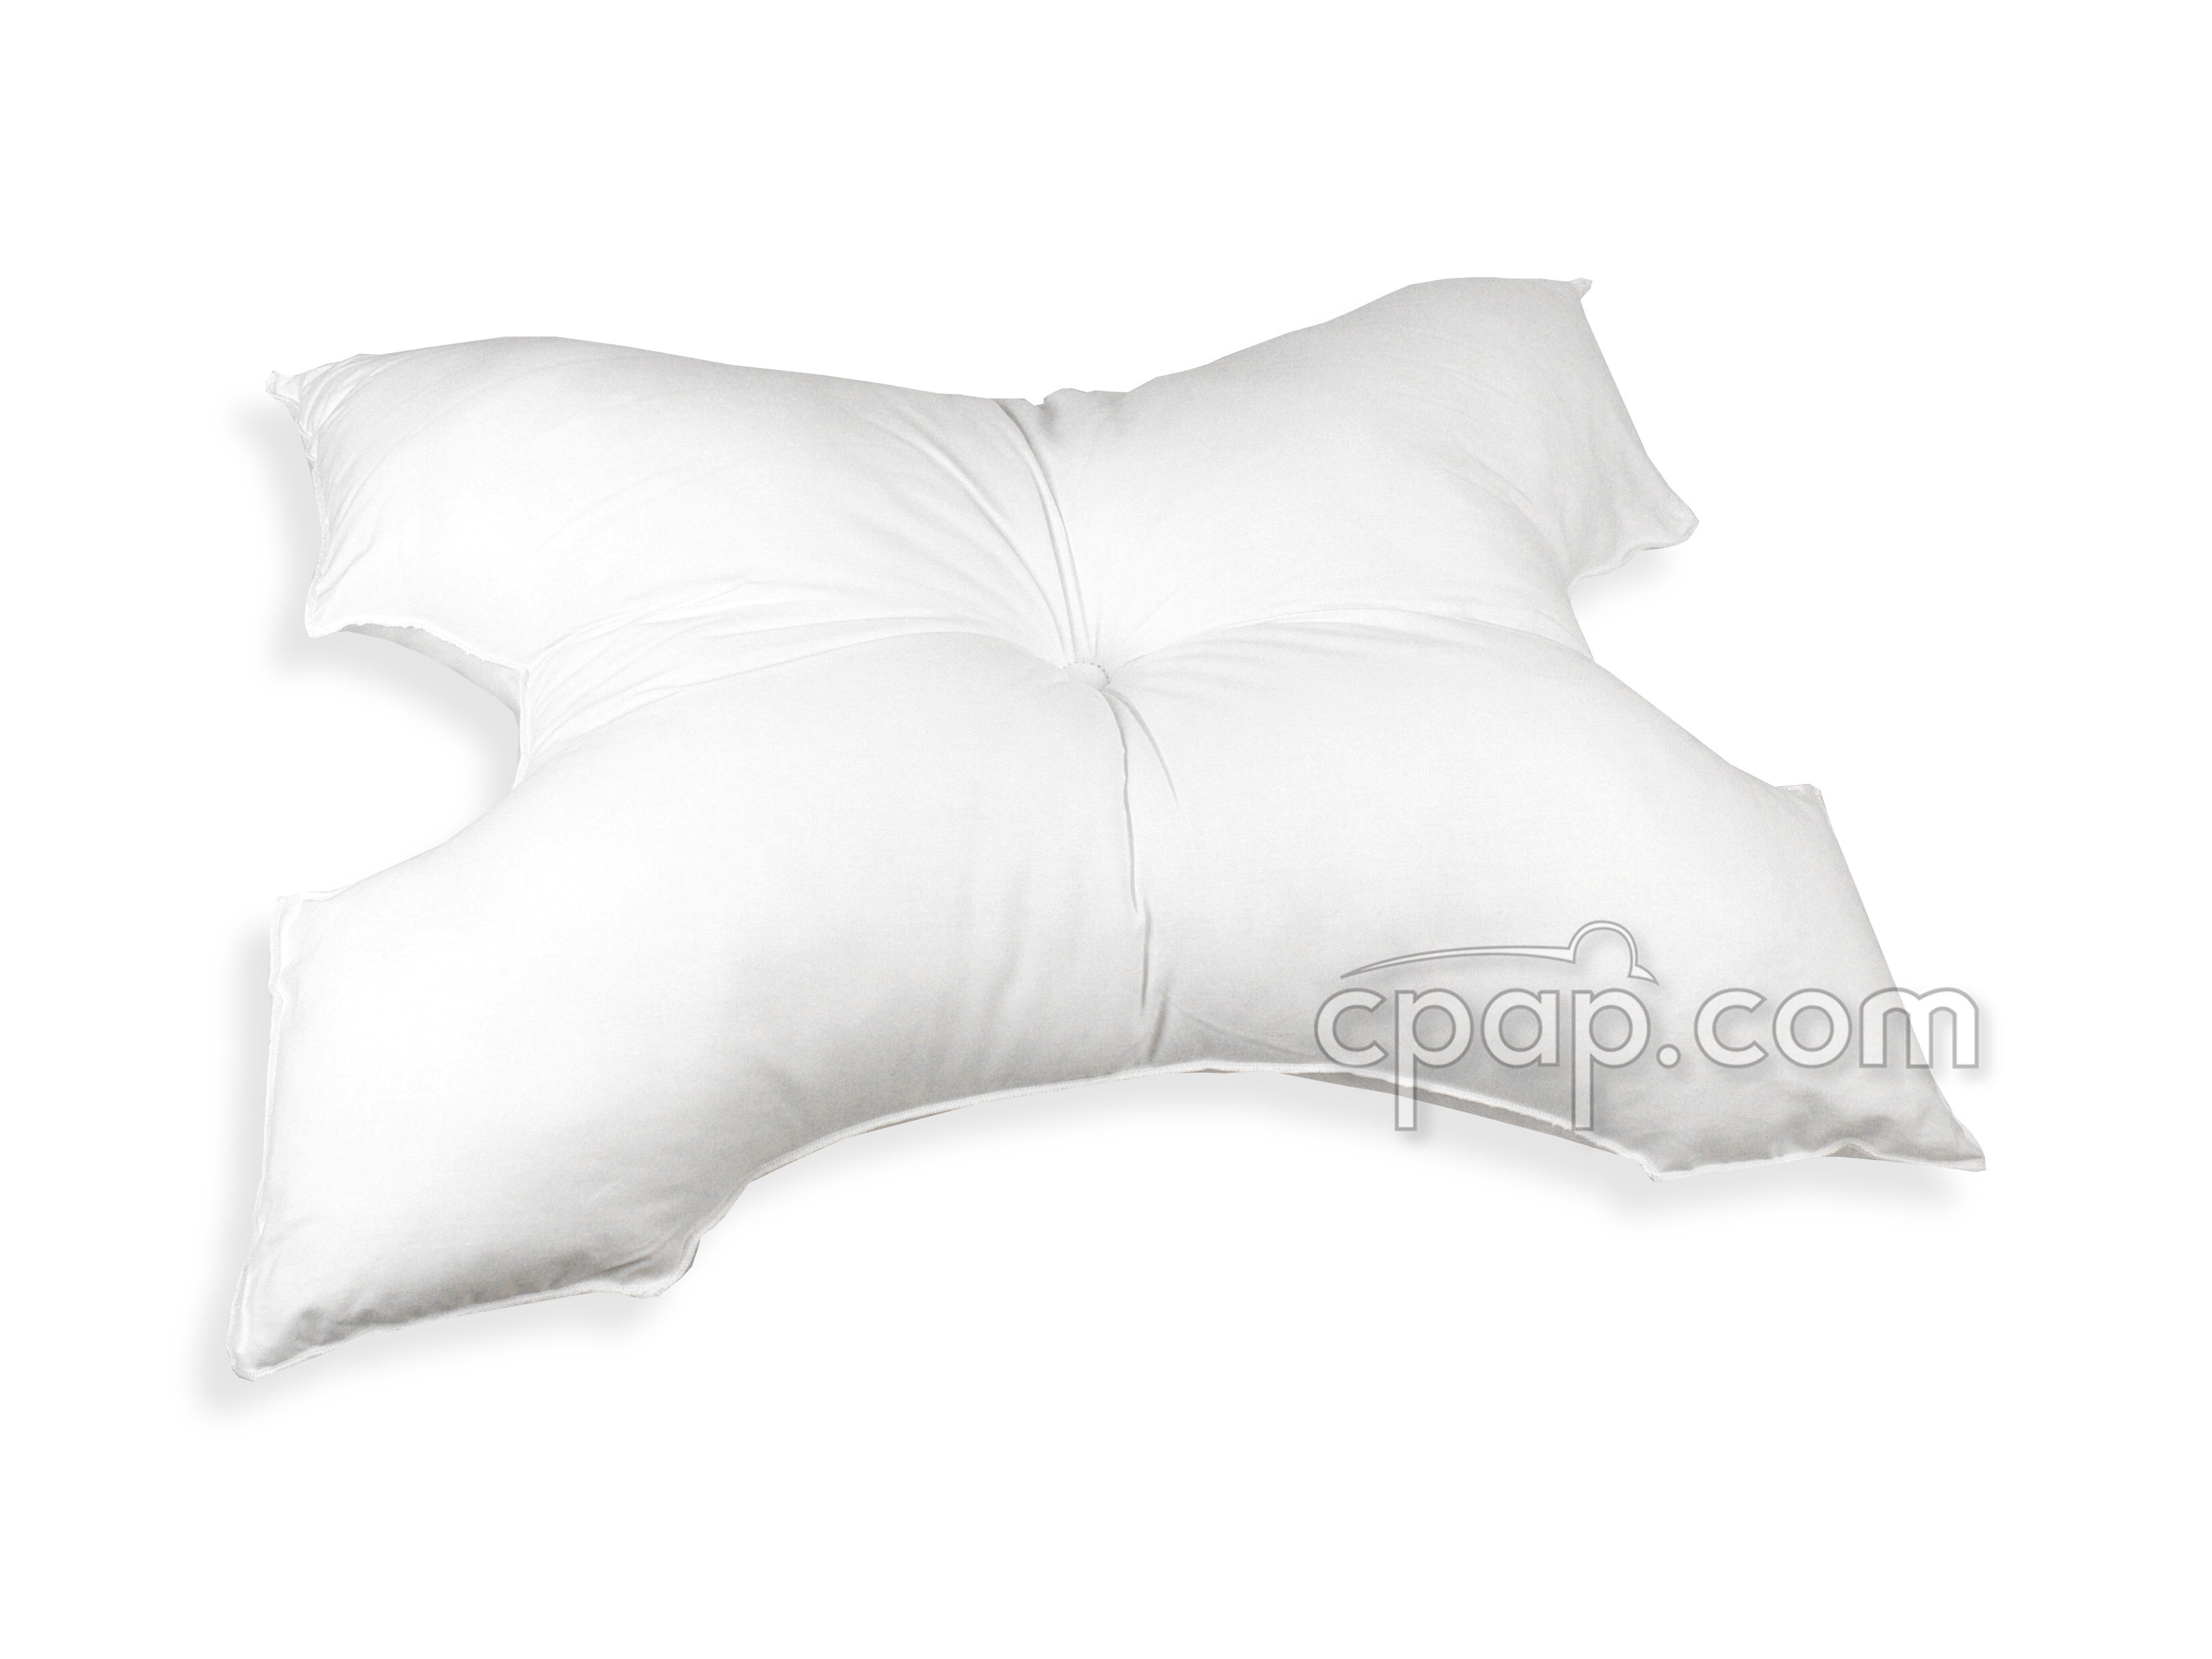 Hypoallergenic CPAP Pillow- angled